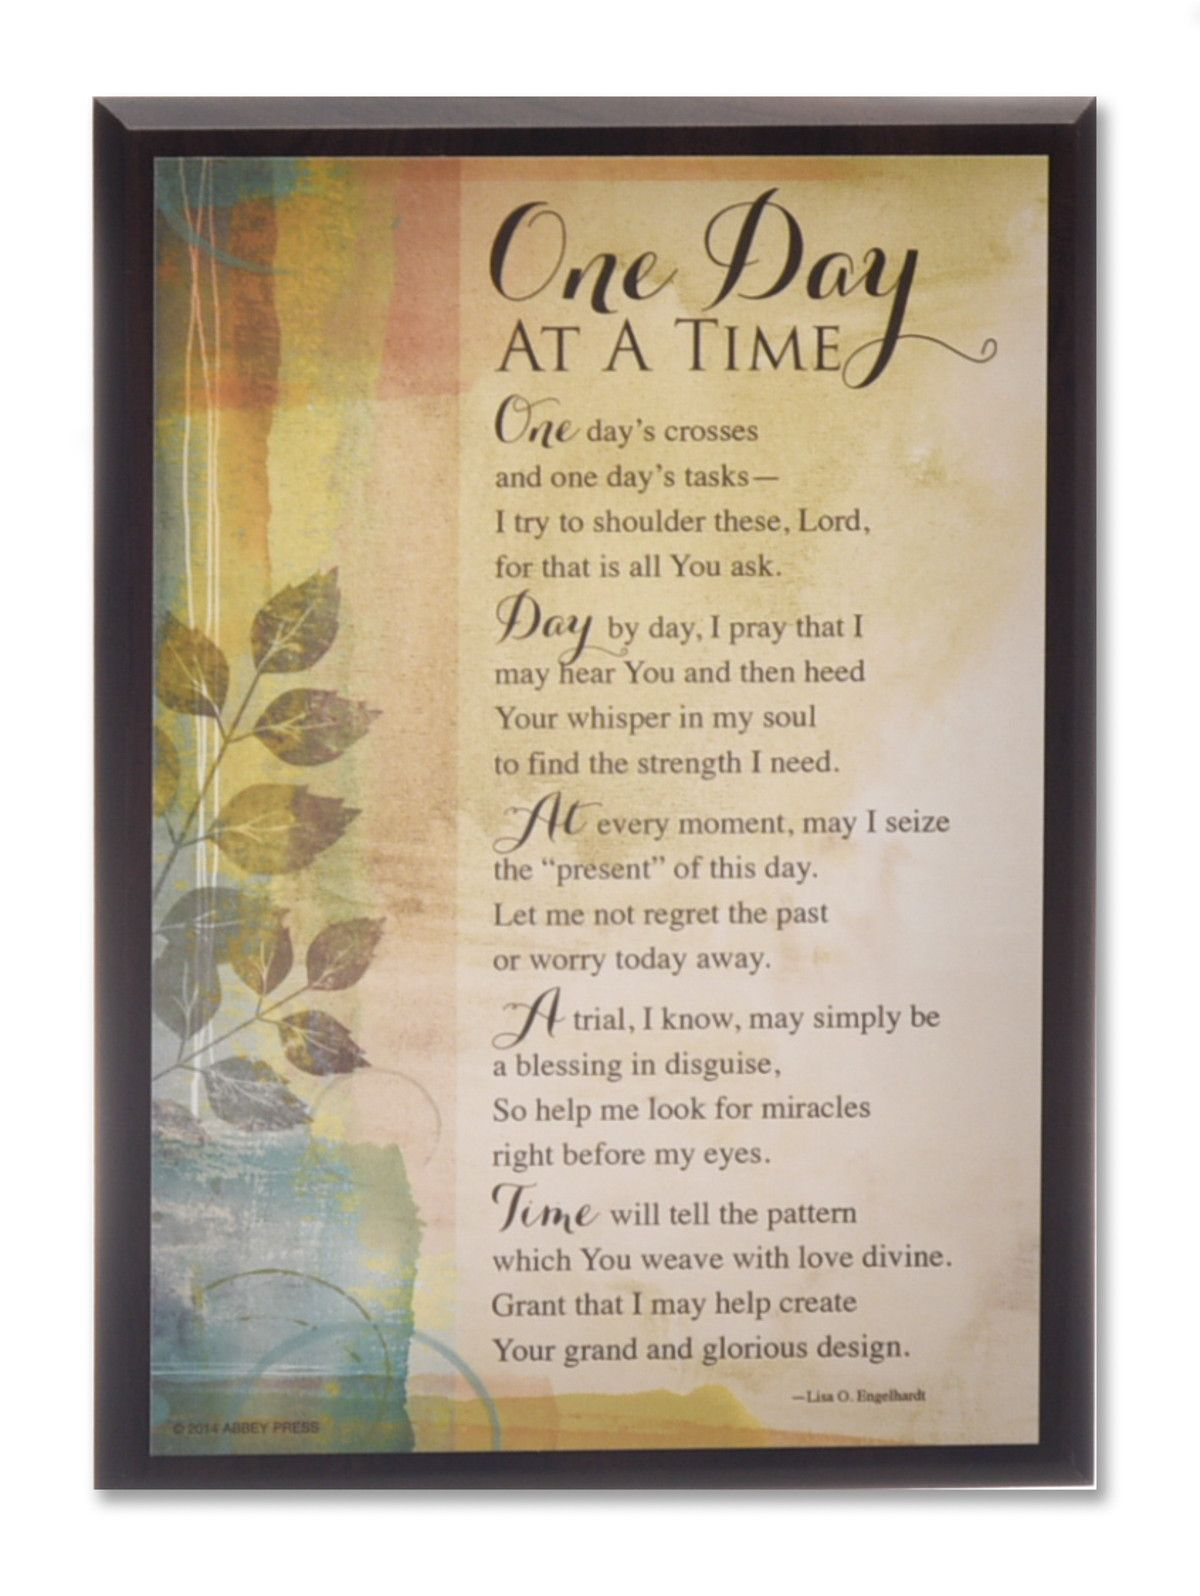 One Day at A Time - Serenity Prayer Plaque | Pinterest | Serenity ...